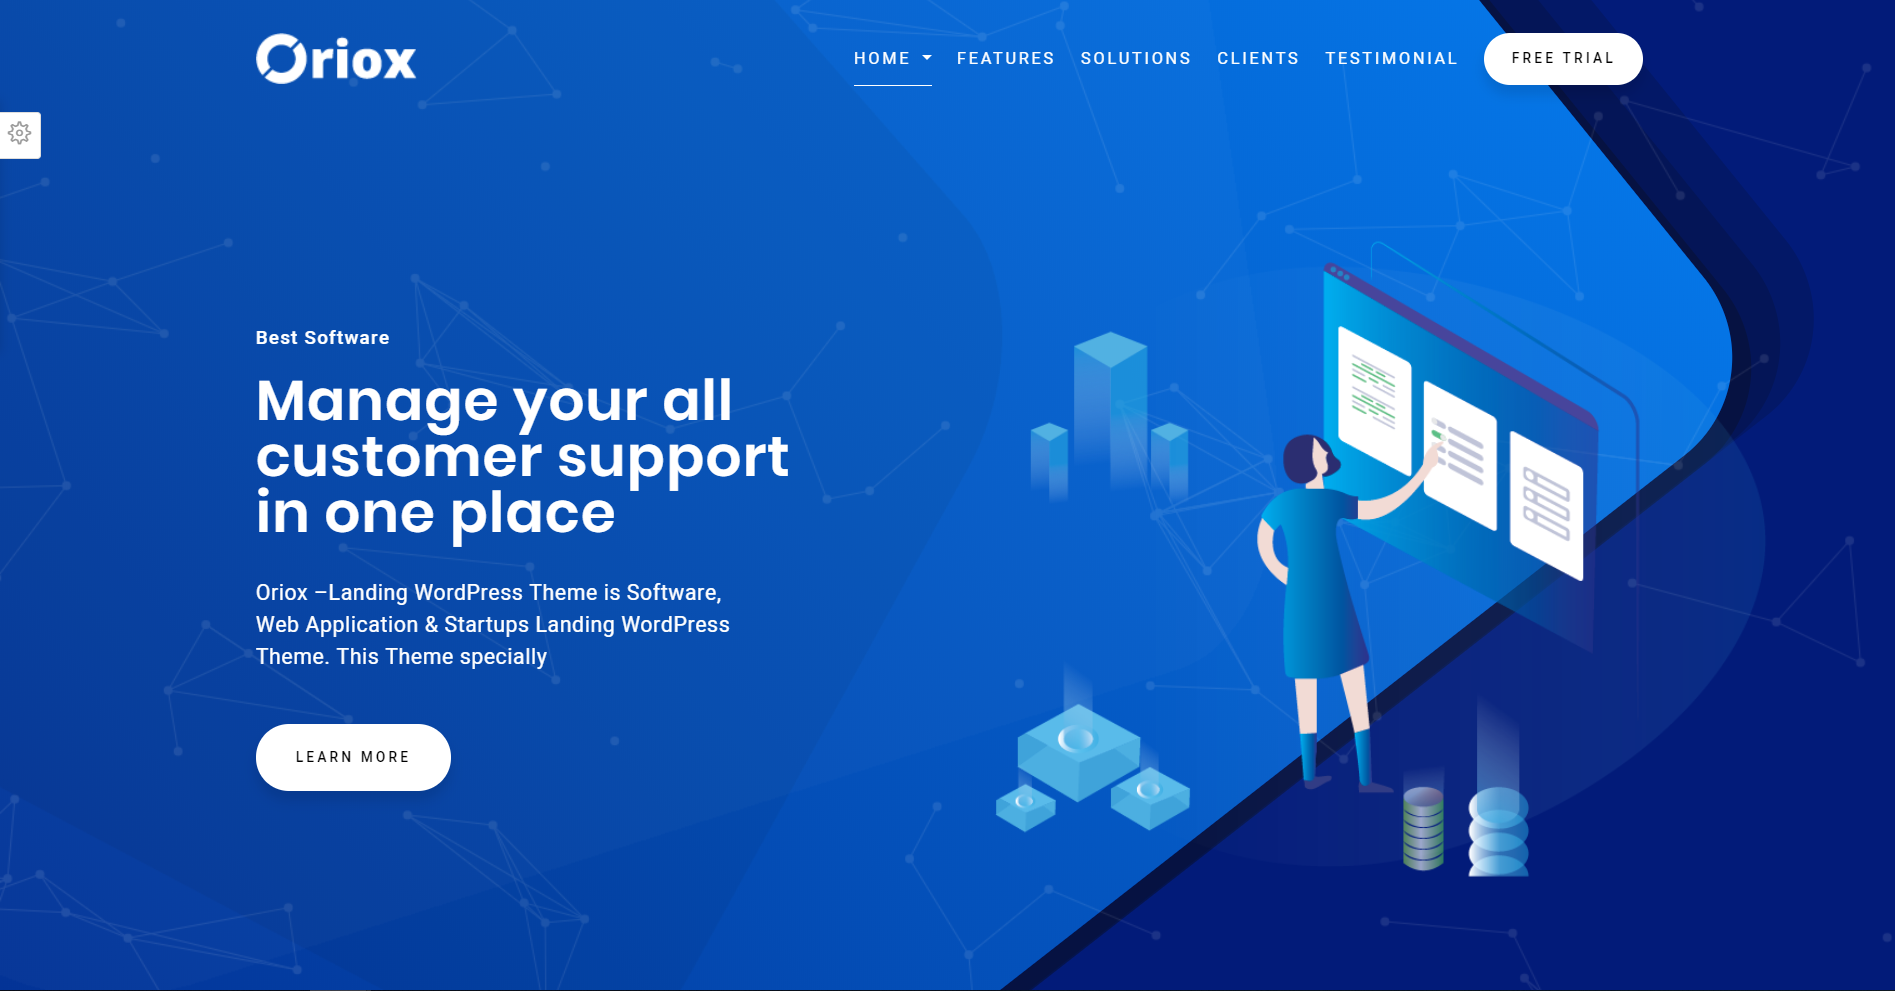 11. Orix - WordPress Landing Page